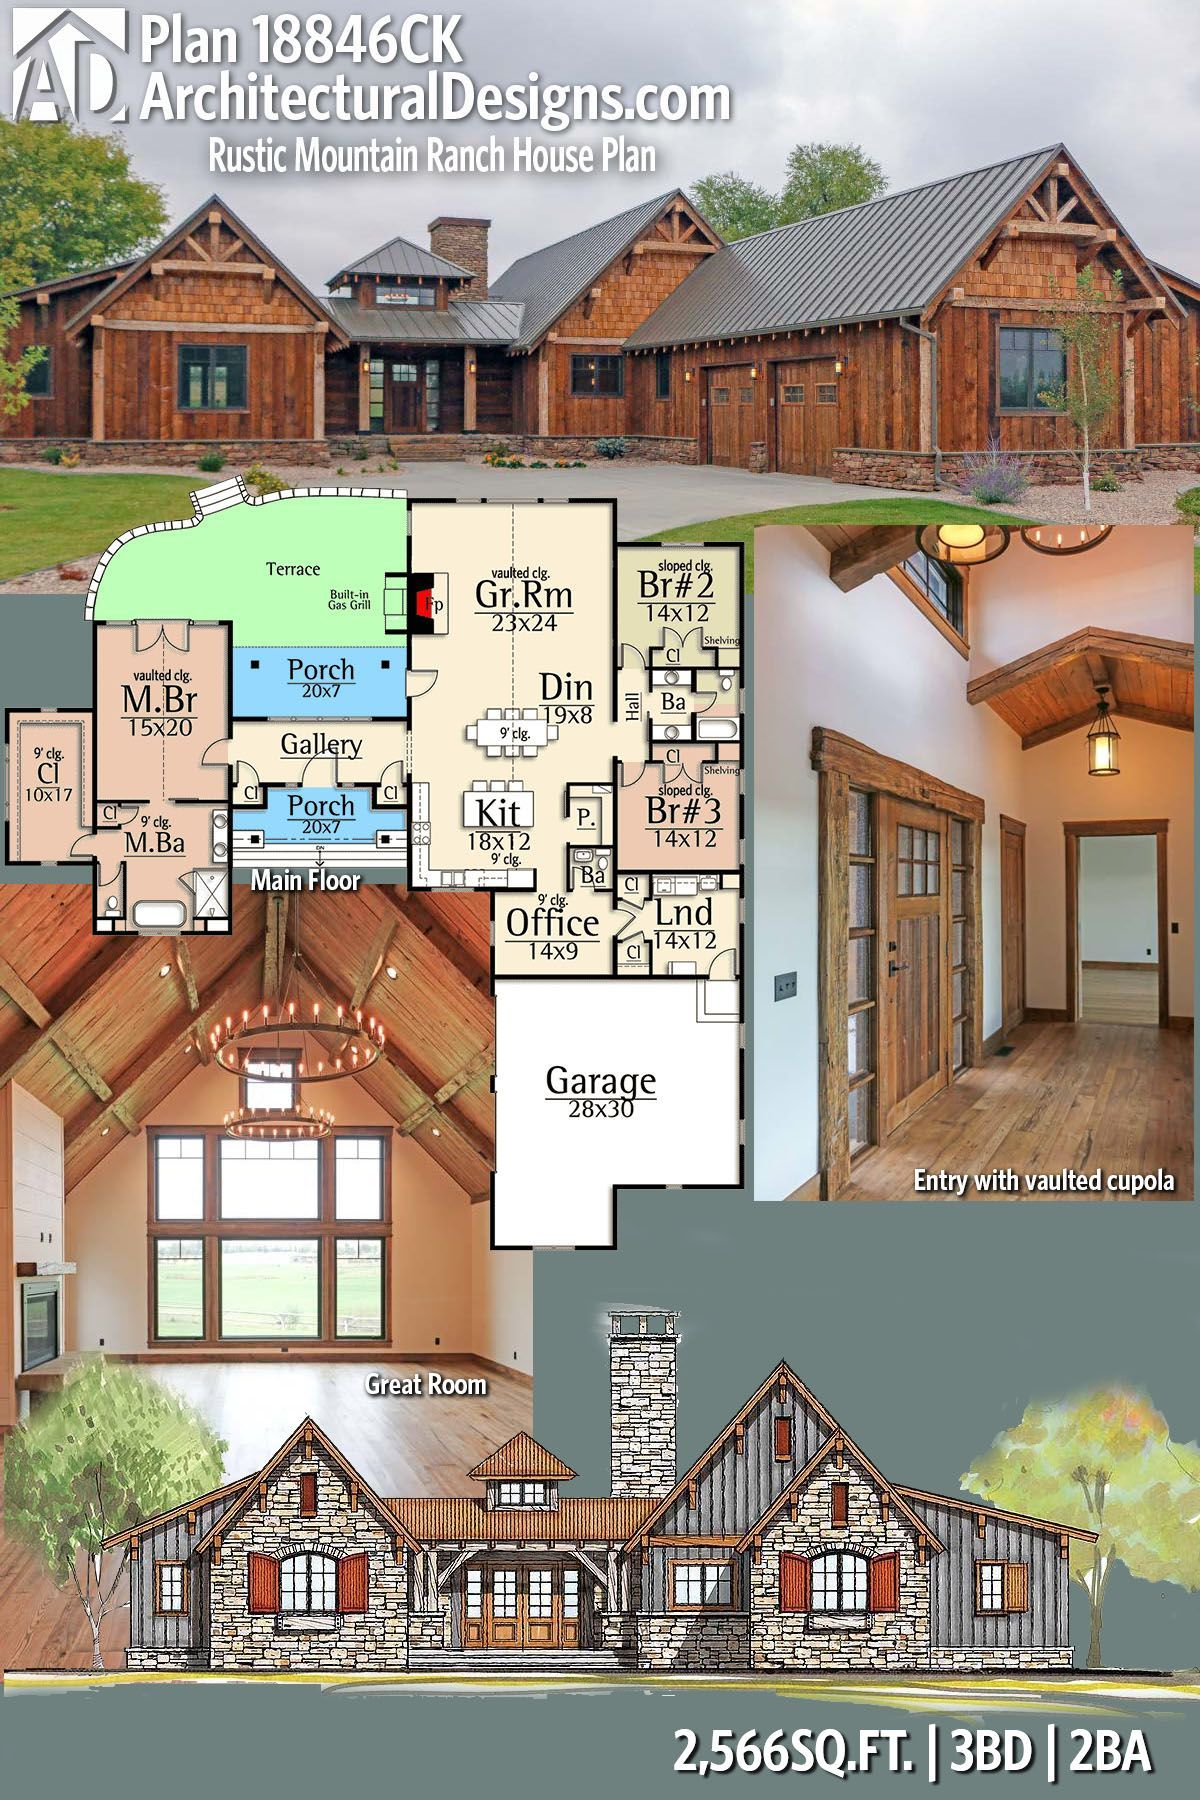 2500 Sq Ft Mountain House Plans Mountain House Plans House Plans Lodge Style House Plans